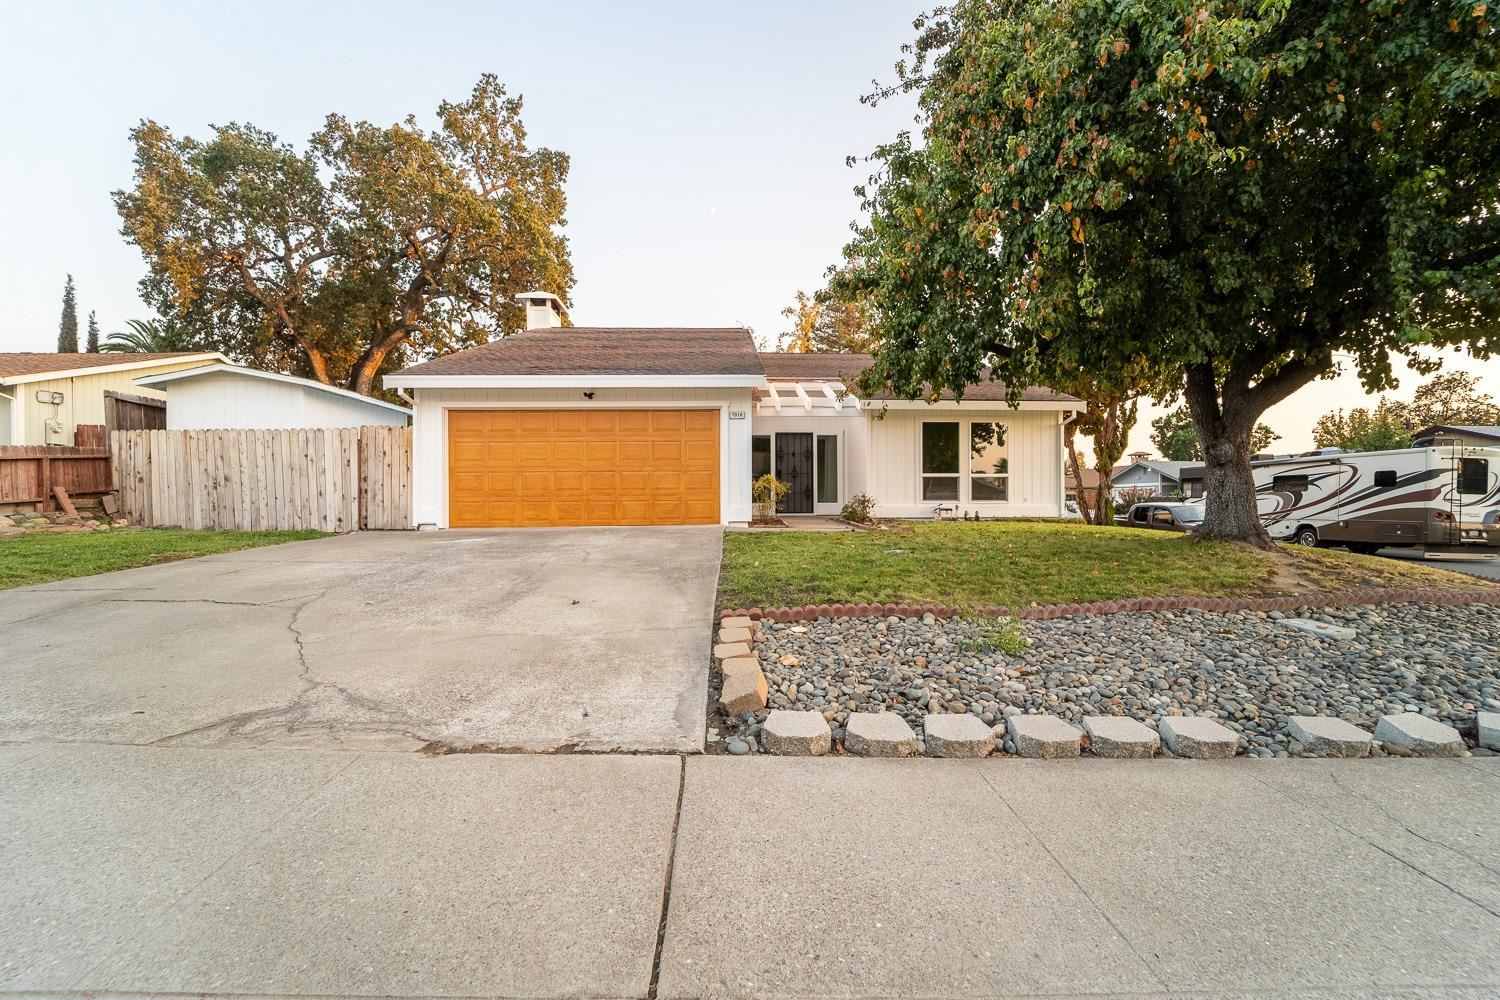 Photo of 7016 Mountainside Drive, Citrus Heights, CA 95621 (MLS # 221117420)